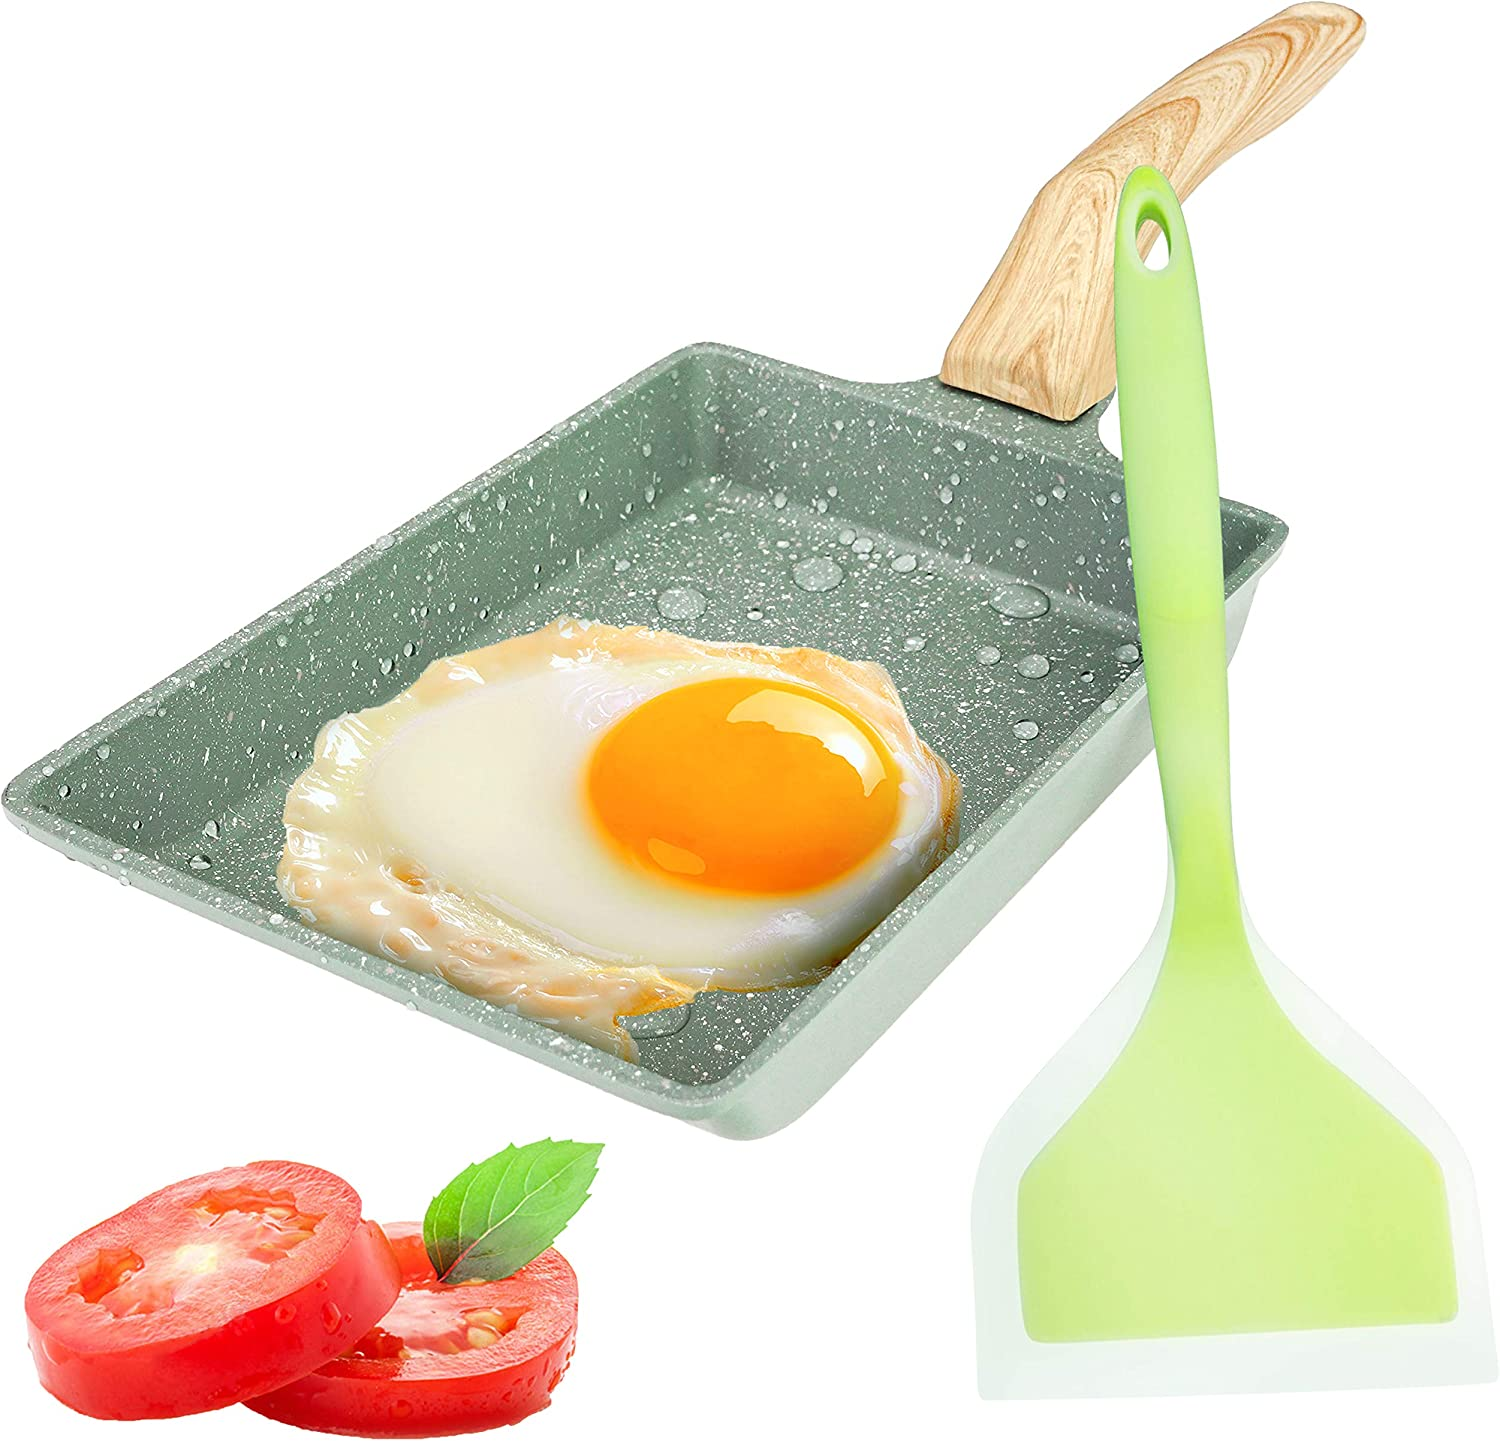 """Egg Pan, Tamagoyaki Pan, Japanese Omelette Pan, Square Pan Non-Stick Ceramic Coating Mini Frying Cooker with Anti Scalding Handle, Gas Stove and Induction Hob Compatible(7.8""""x6"""", Green)"""